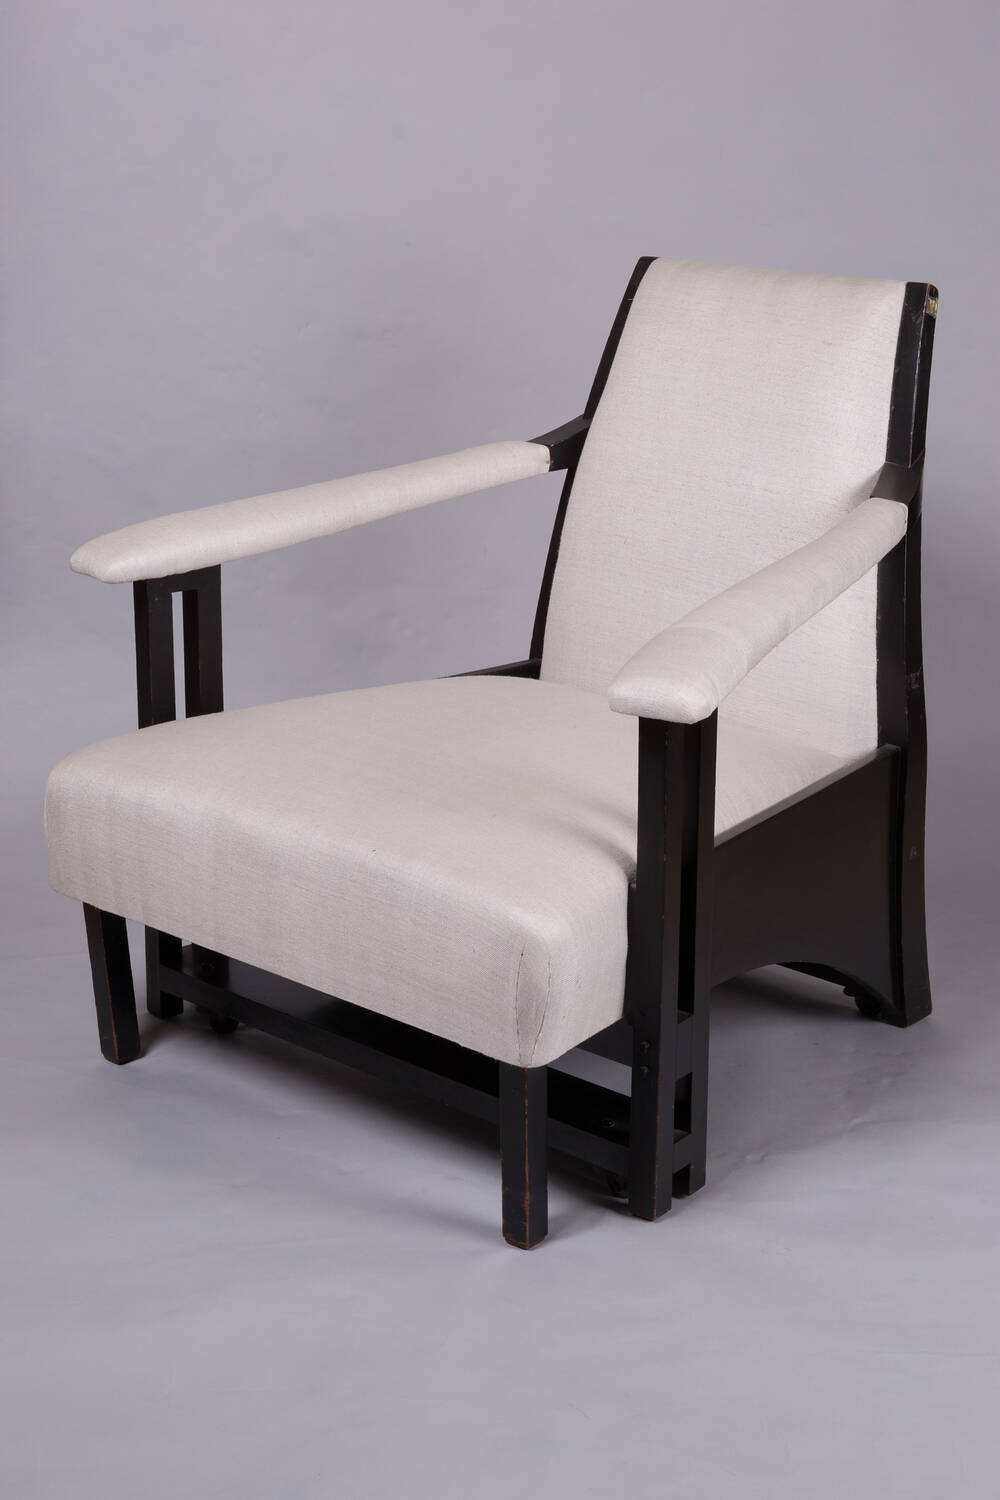 An easy armchair, designed by Charles Rennie Mackintosh. It has a dark wooden frame, with white linen-style padded sections.